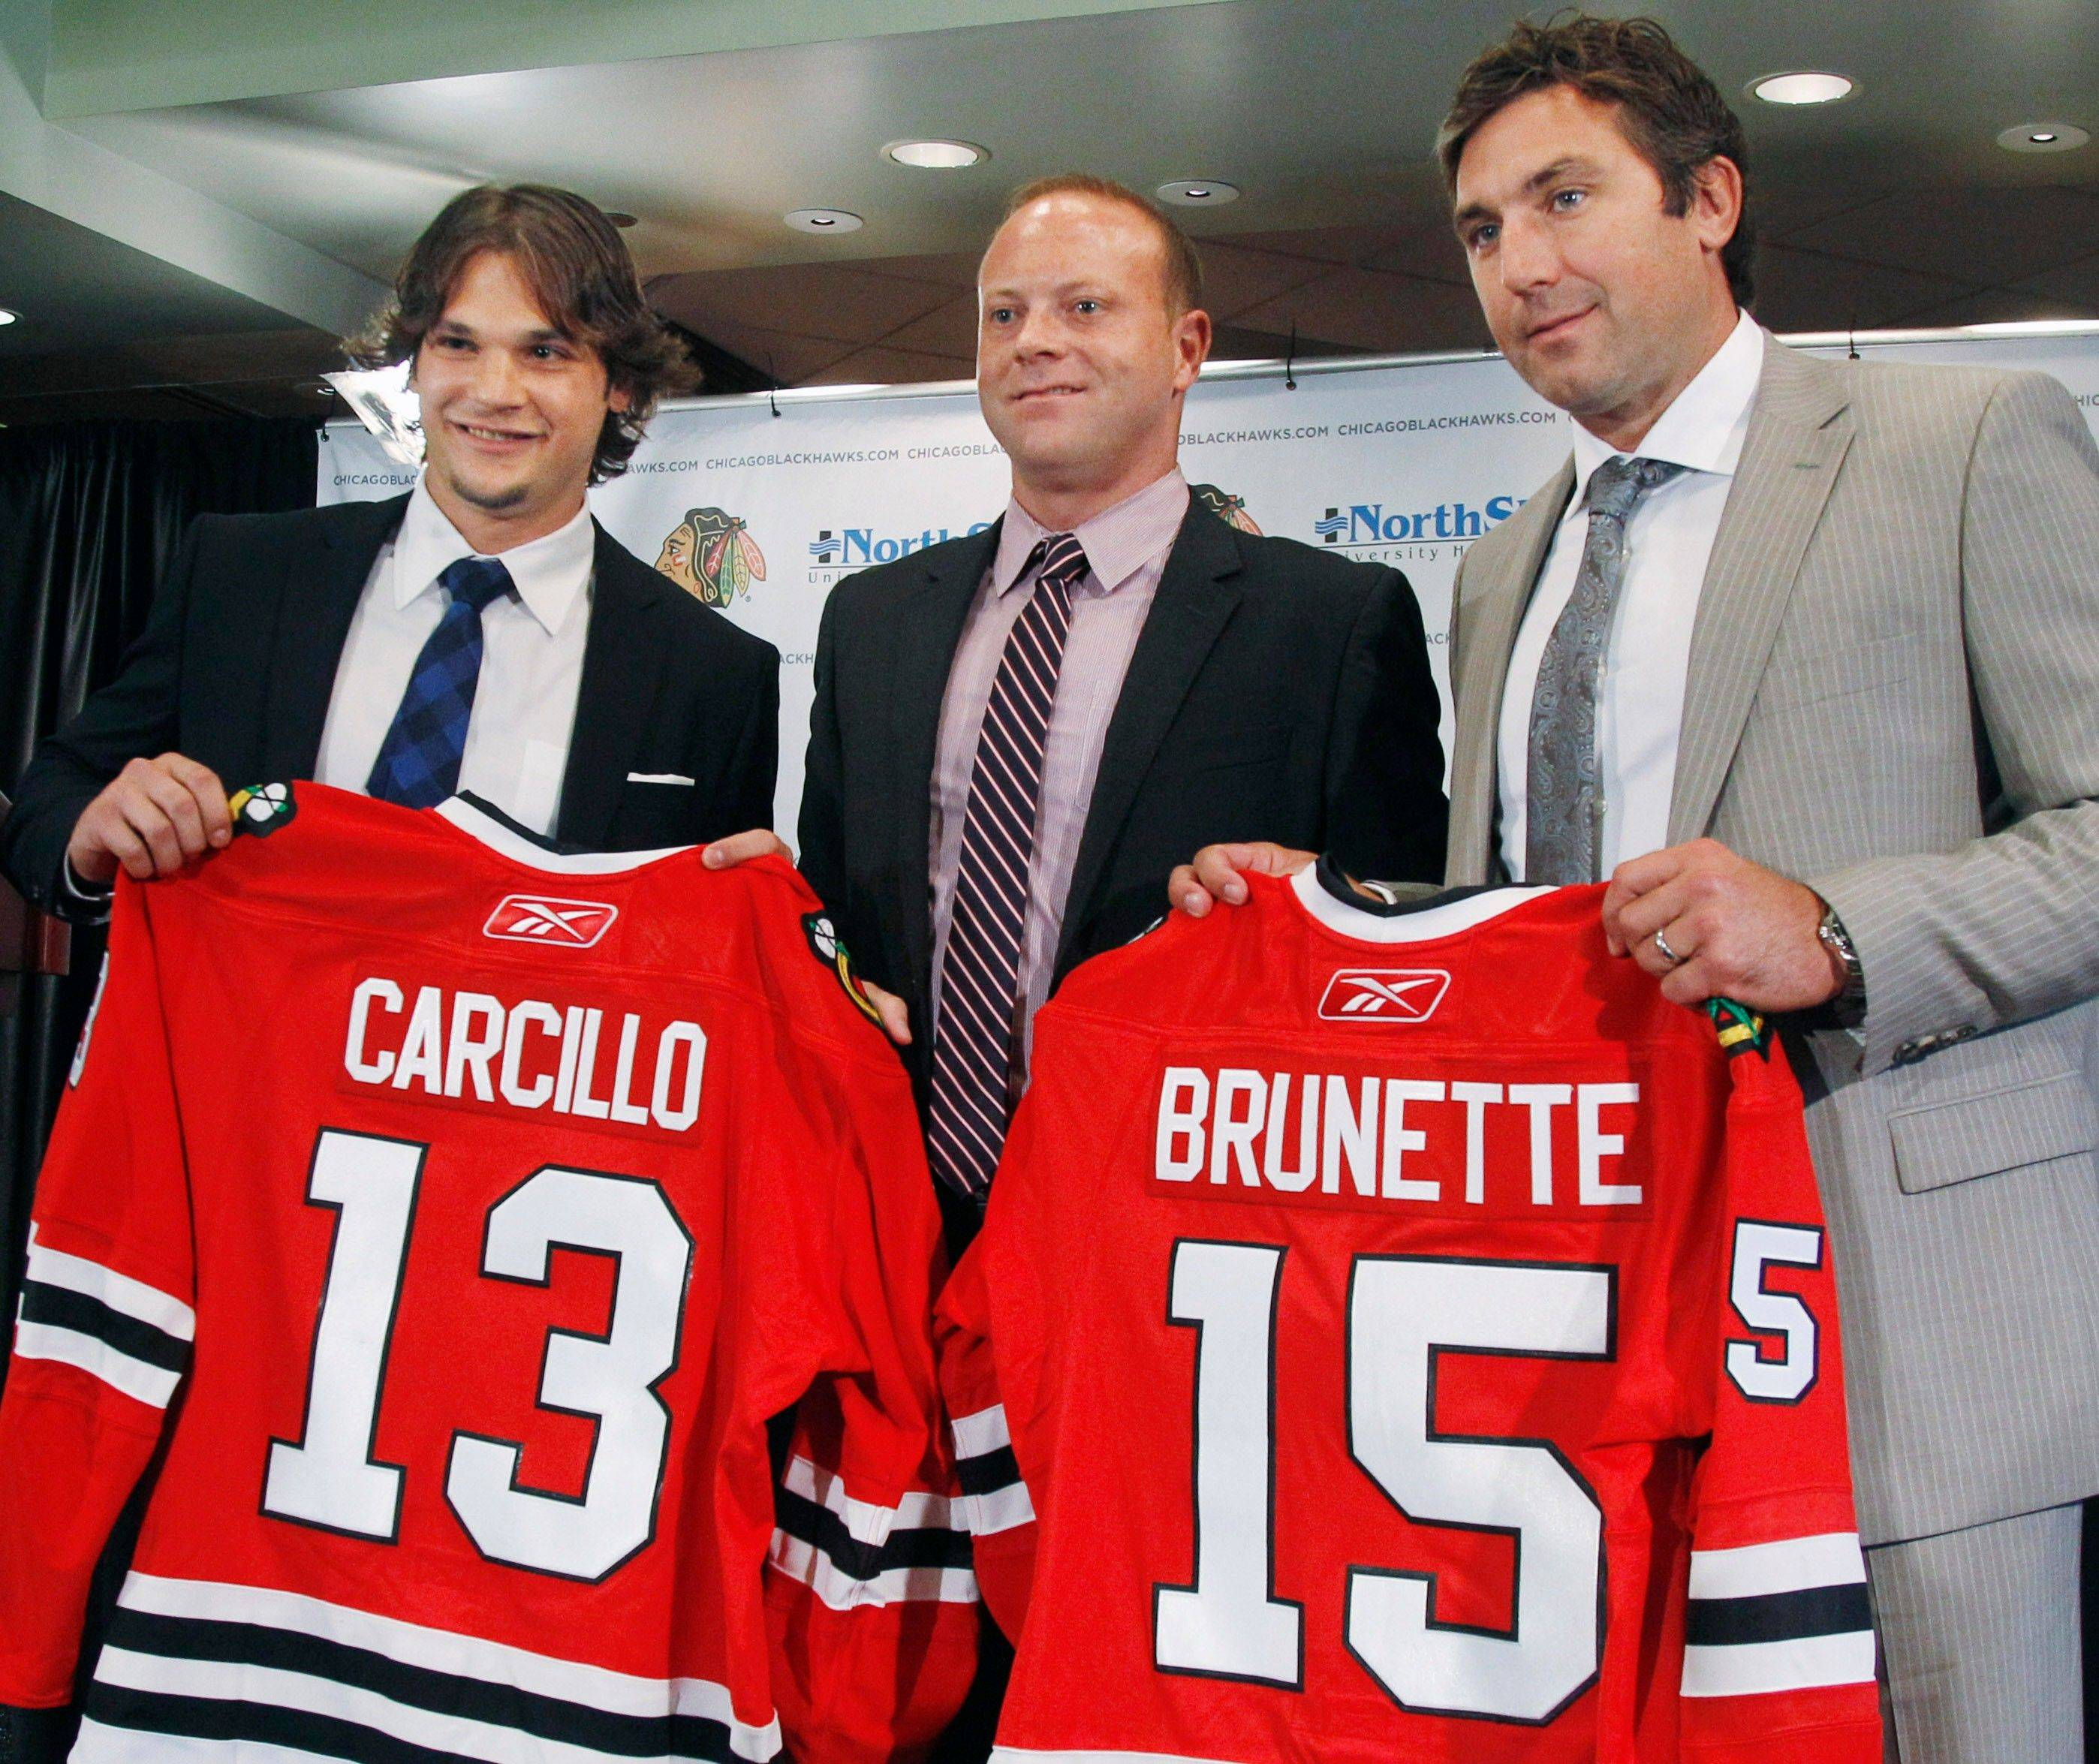 Andrew Brunette, right, shown here with Daniel Carcillo and GM Stan Bowman, will get to show what kind of chemistry he has with his new Blackhawks teammates Friday night at the United Center.